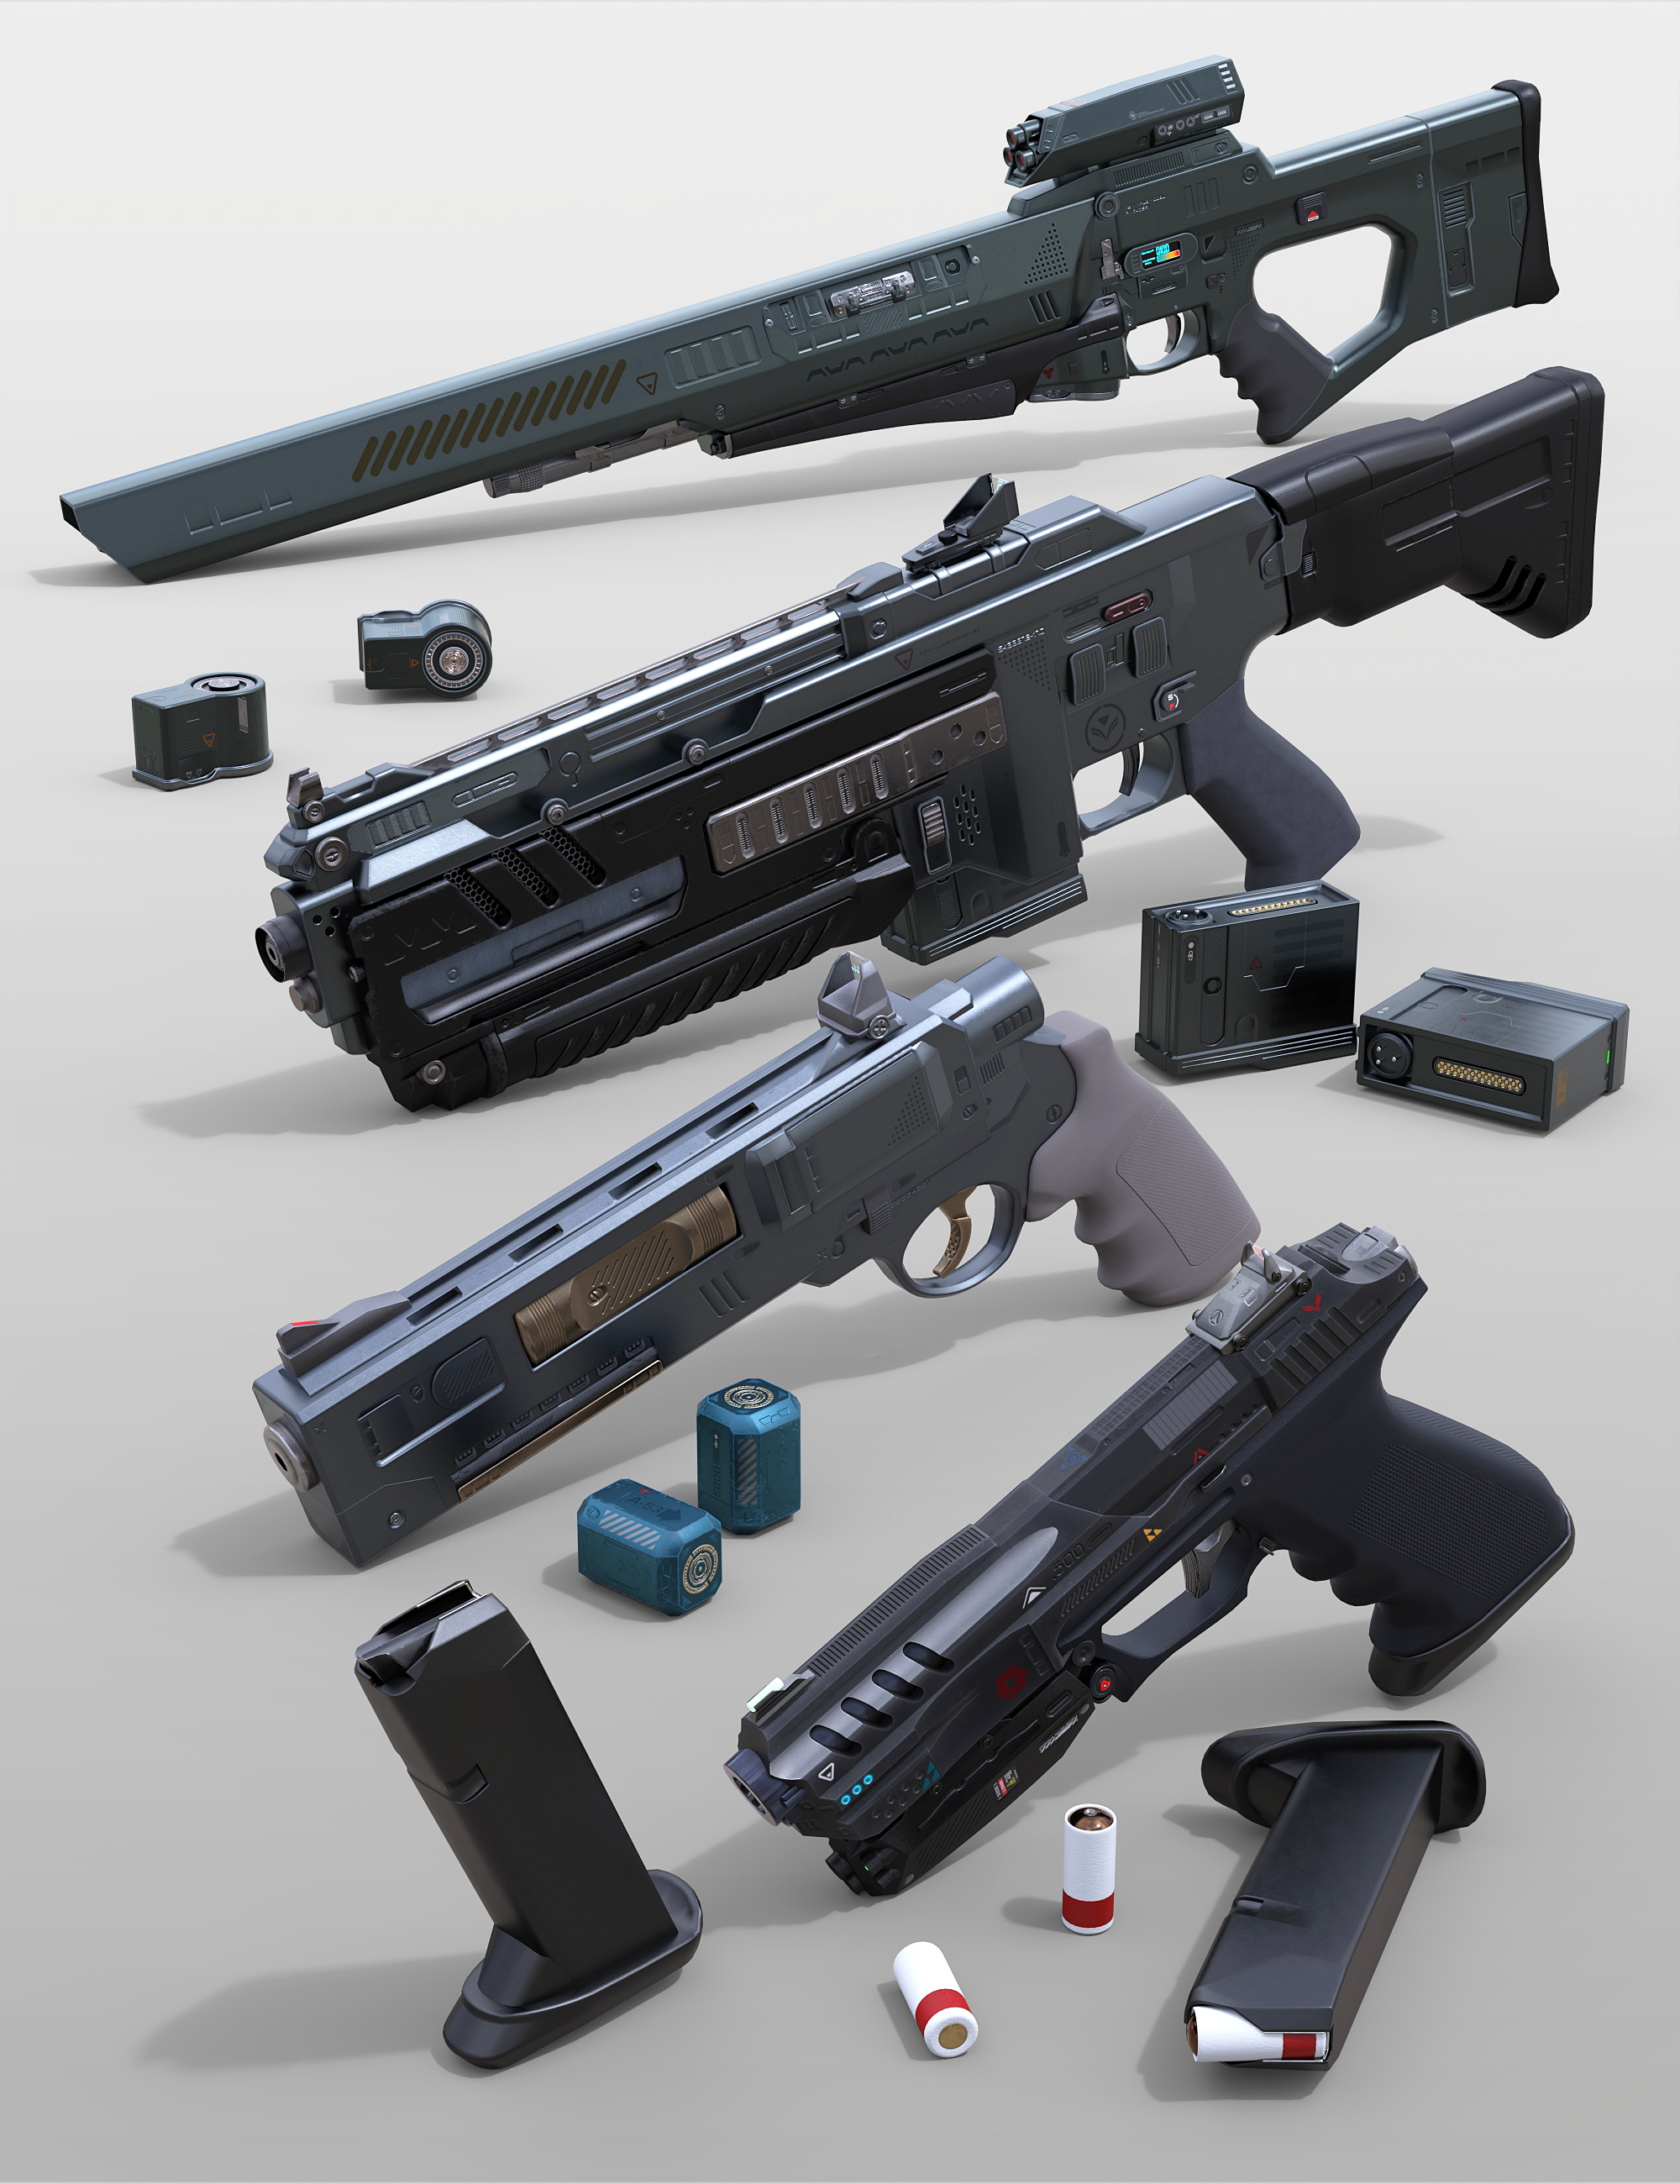 Sci-Fi Weapons Collection 3 by: Porsimo, 3D Models by Daz 3D